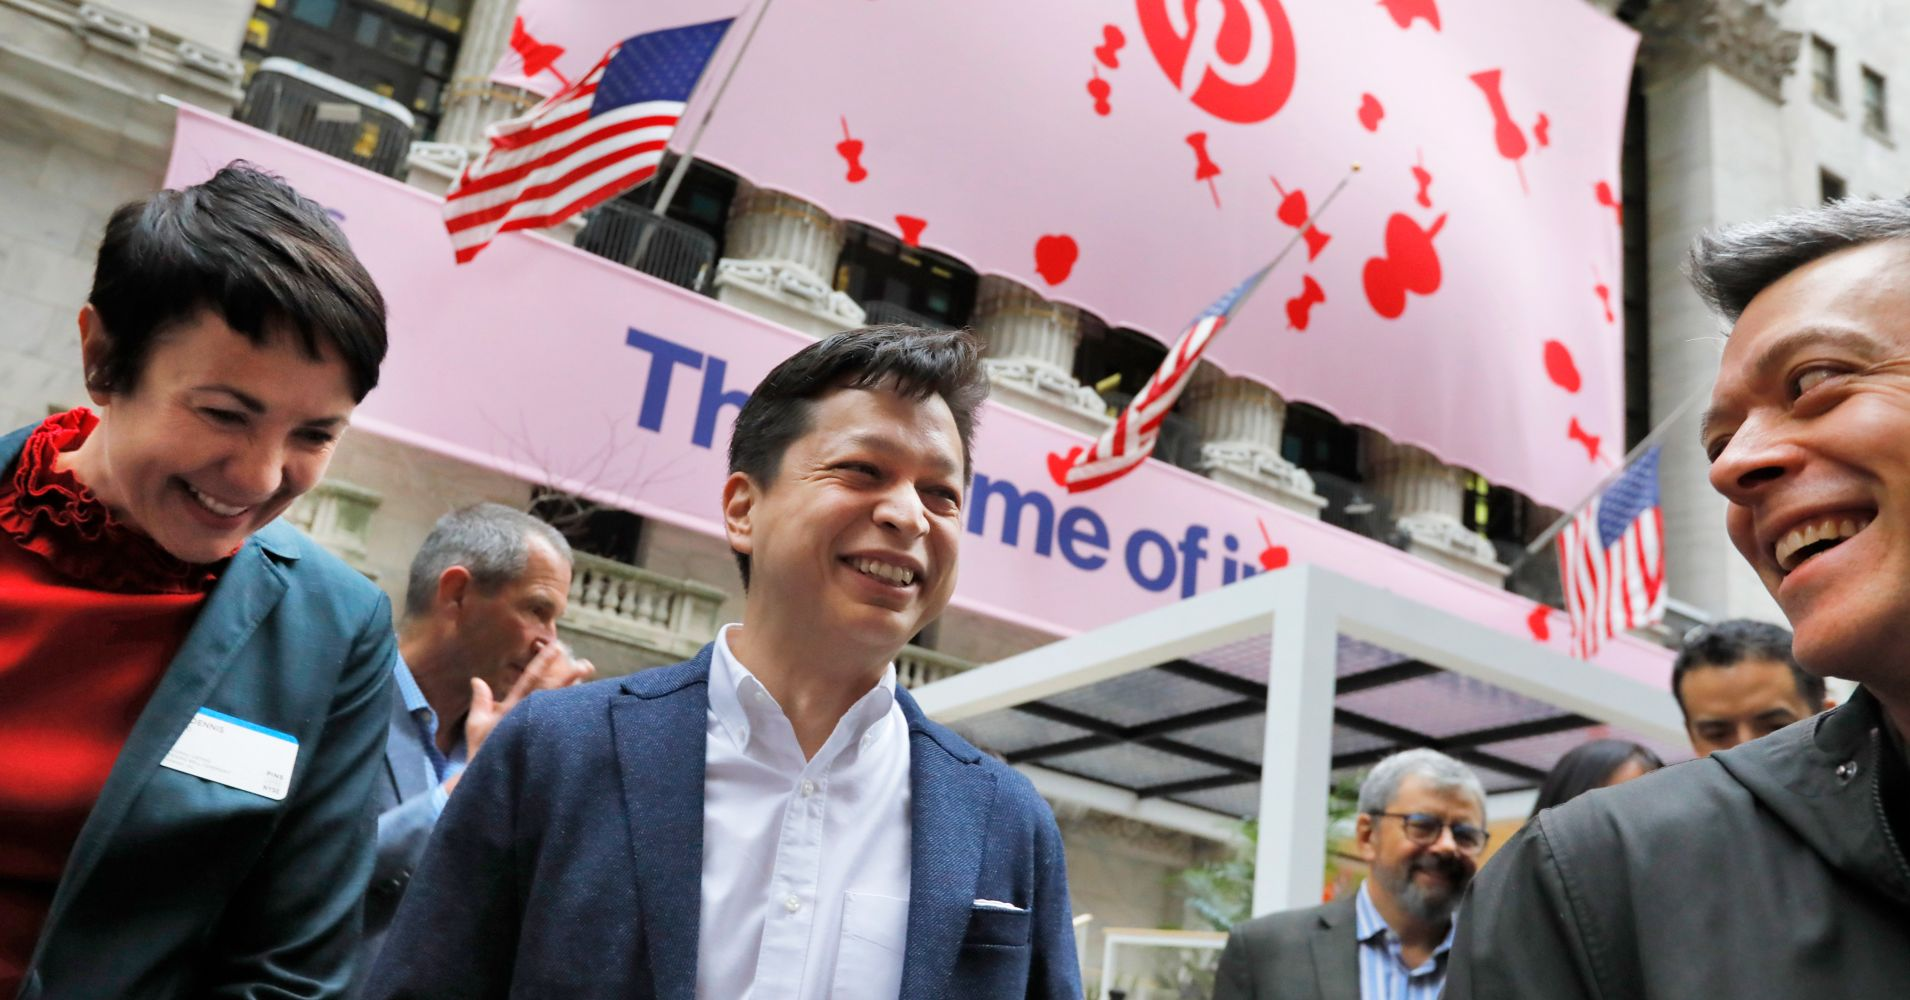 Pinterest co-founder & CEO Ben Silbermann, center, gathers with company employees outside the New York Stock Exchange, Thursday, April 18, 2019, before the Pinterest IPO.